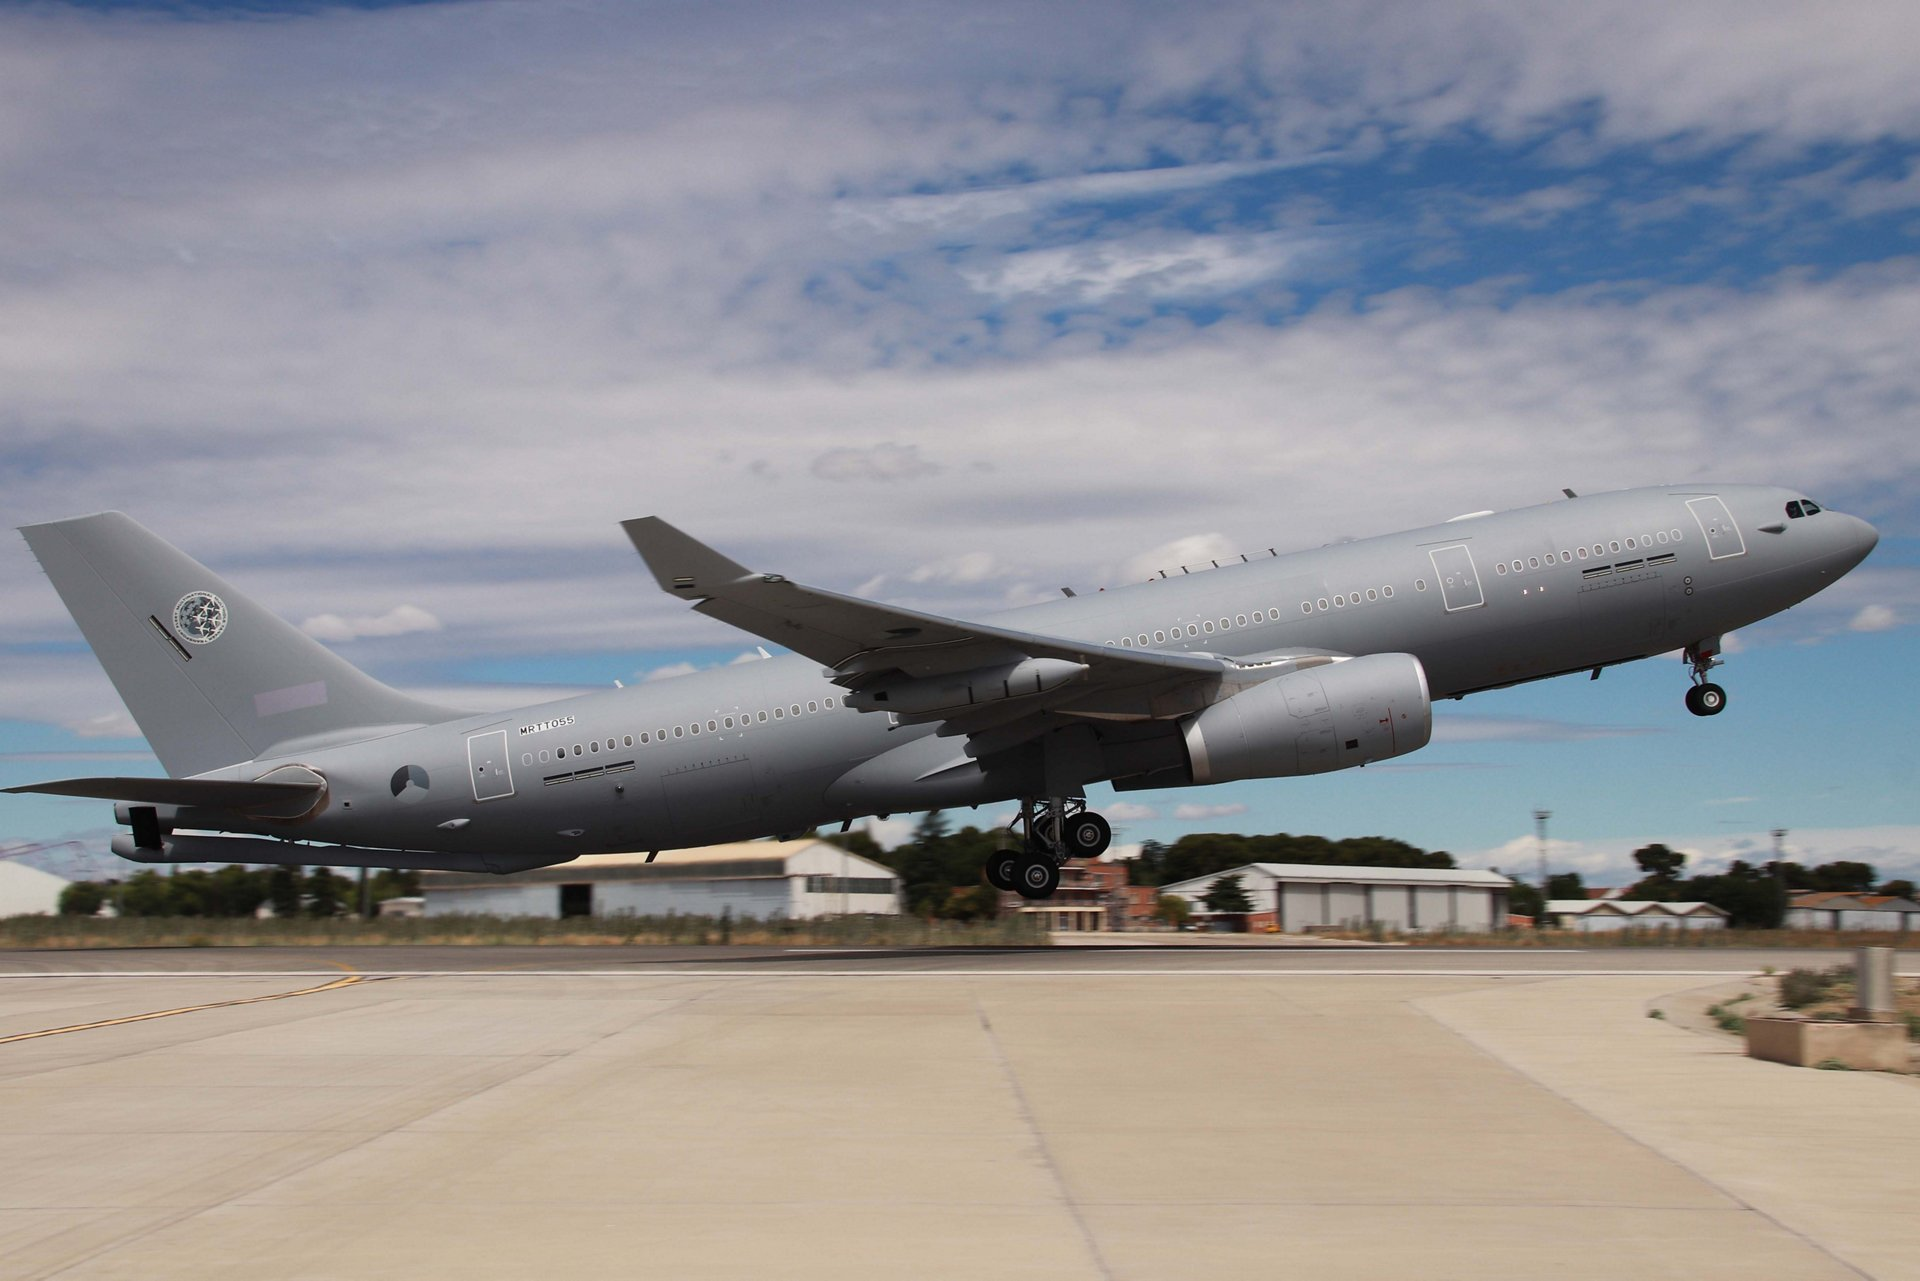 A330 MRTT NATO Multinational Multi Role Tanker Transport Fleet